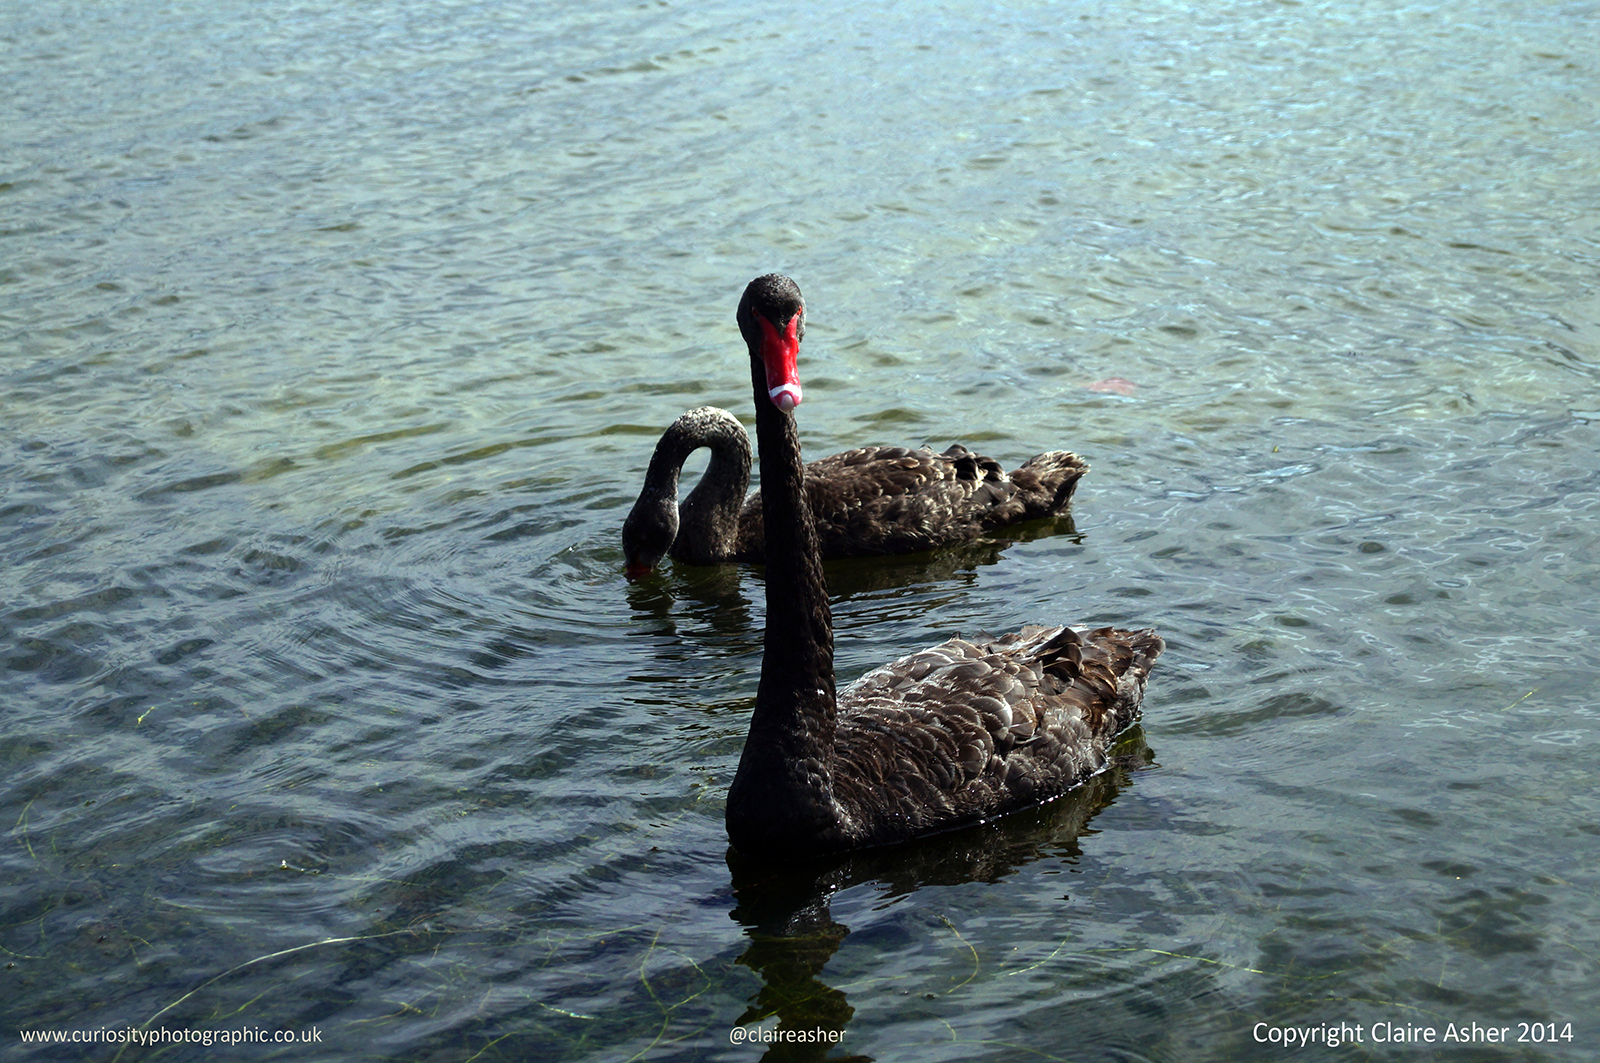 Two Black Swans (Cygnus atratus  photographed in New Zealand in 2014.